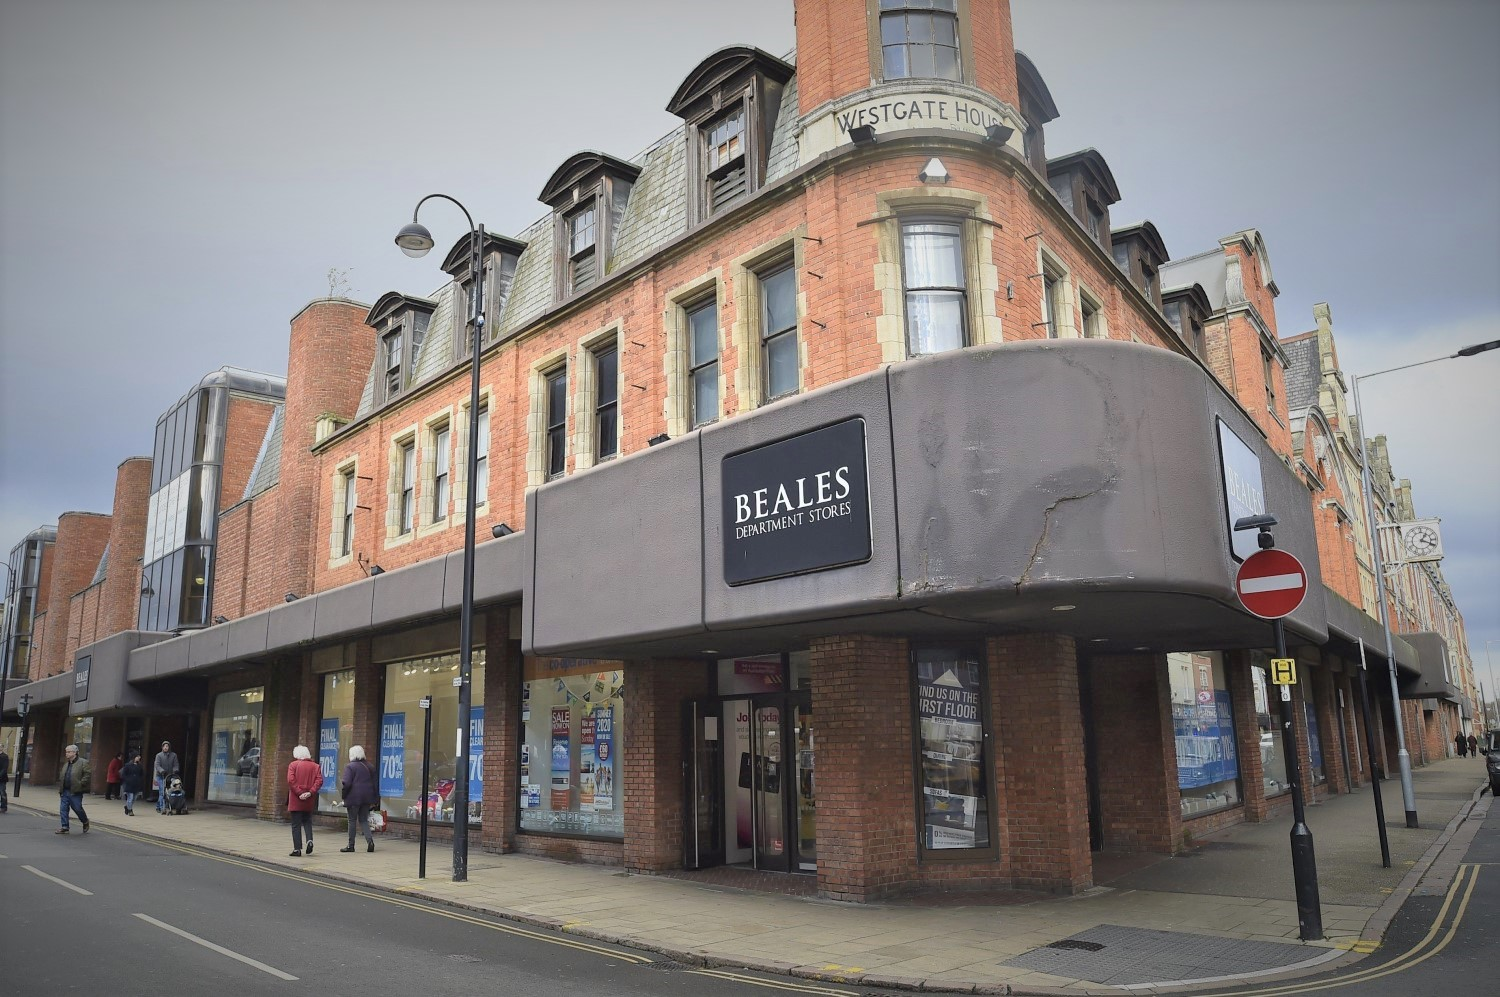 New Store Opening for Beales